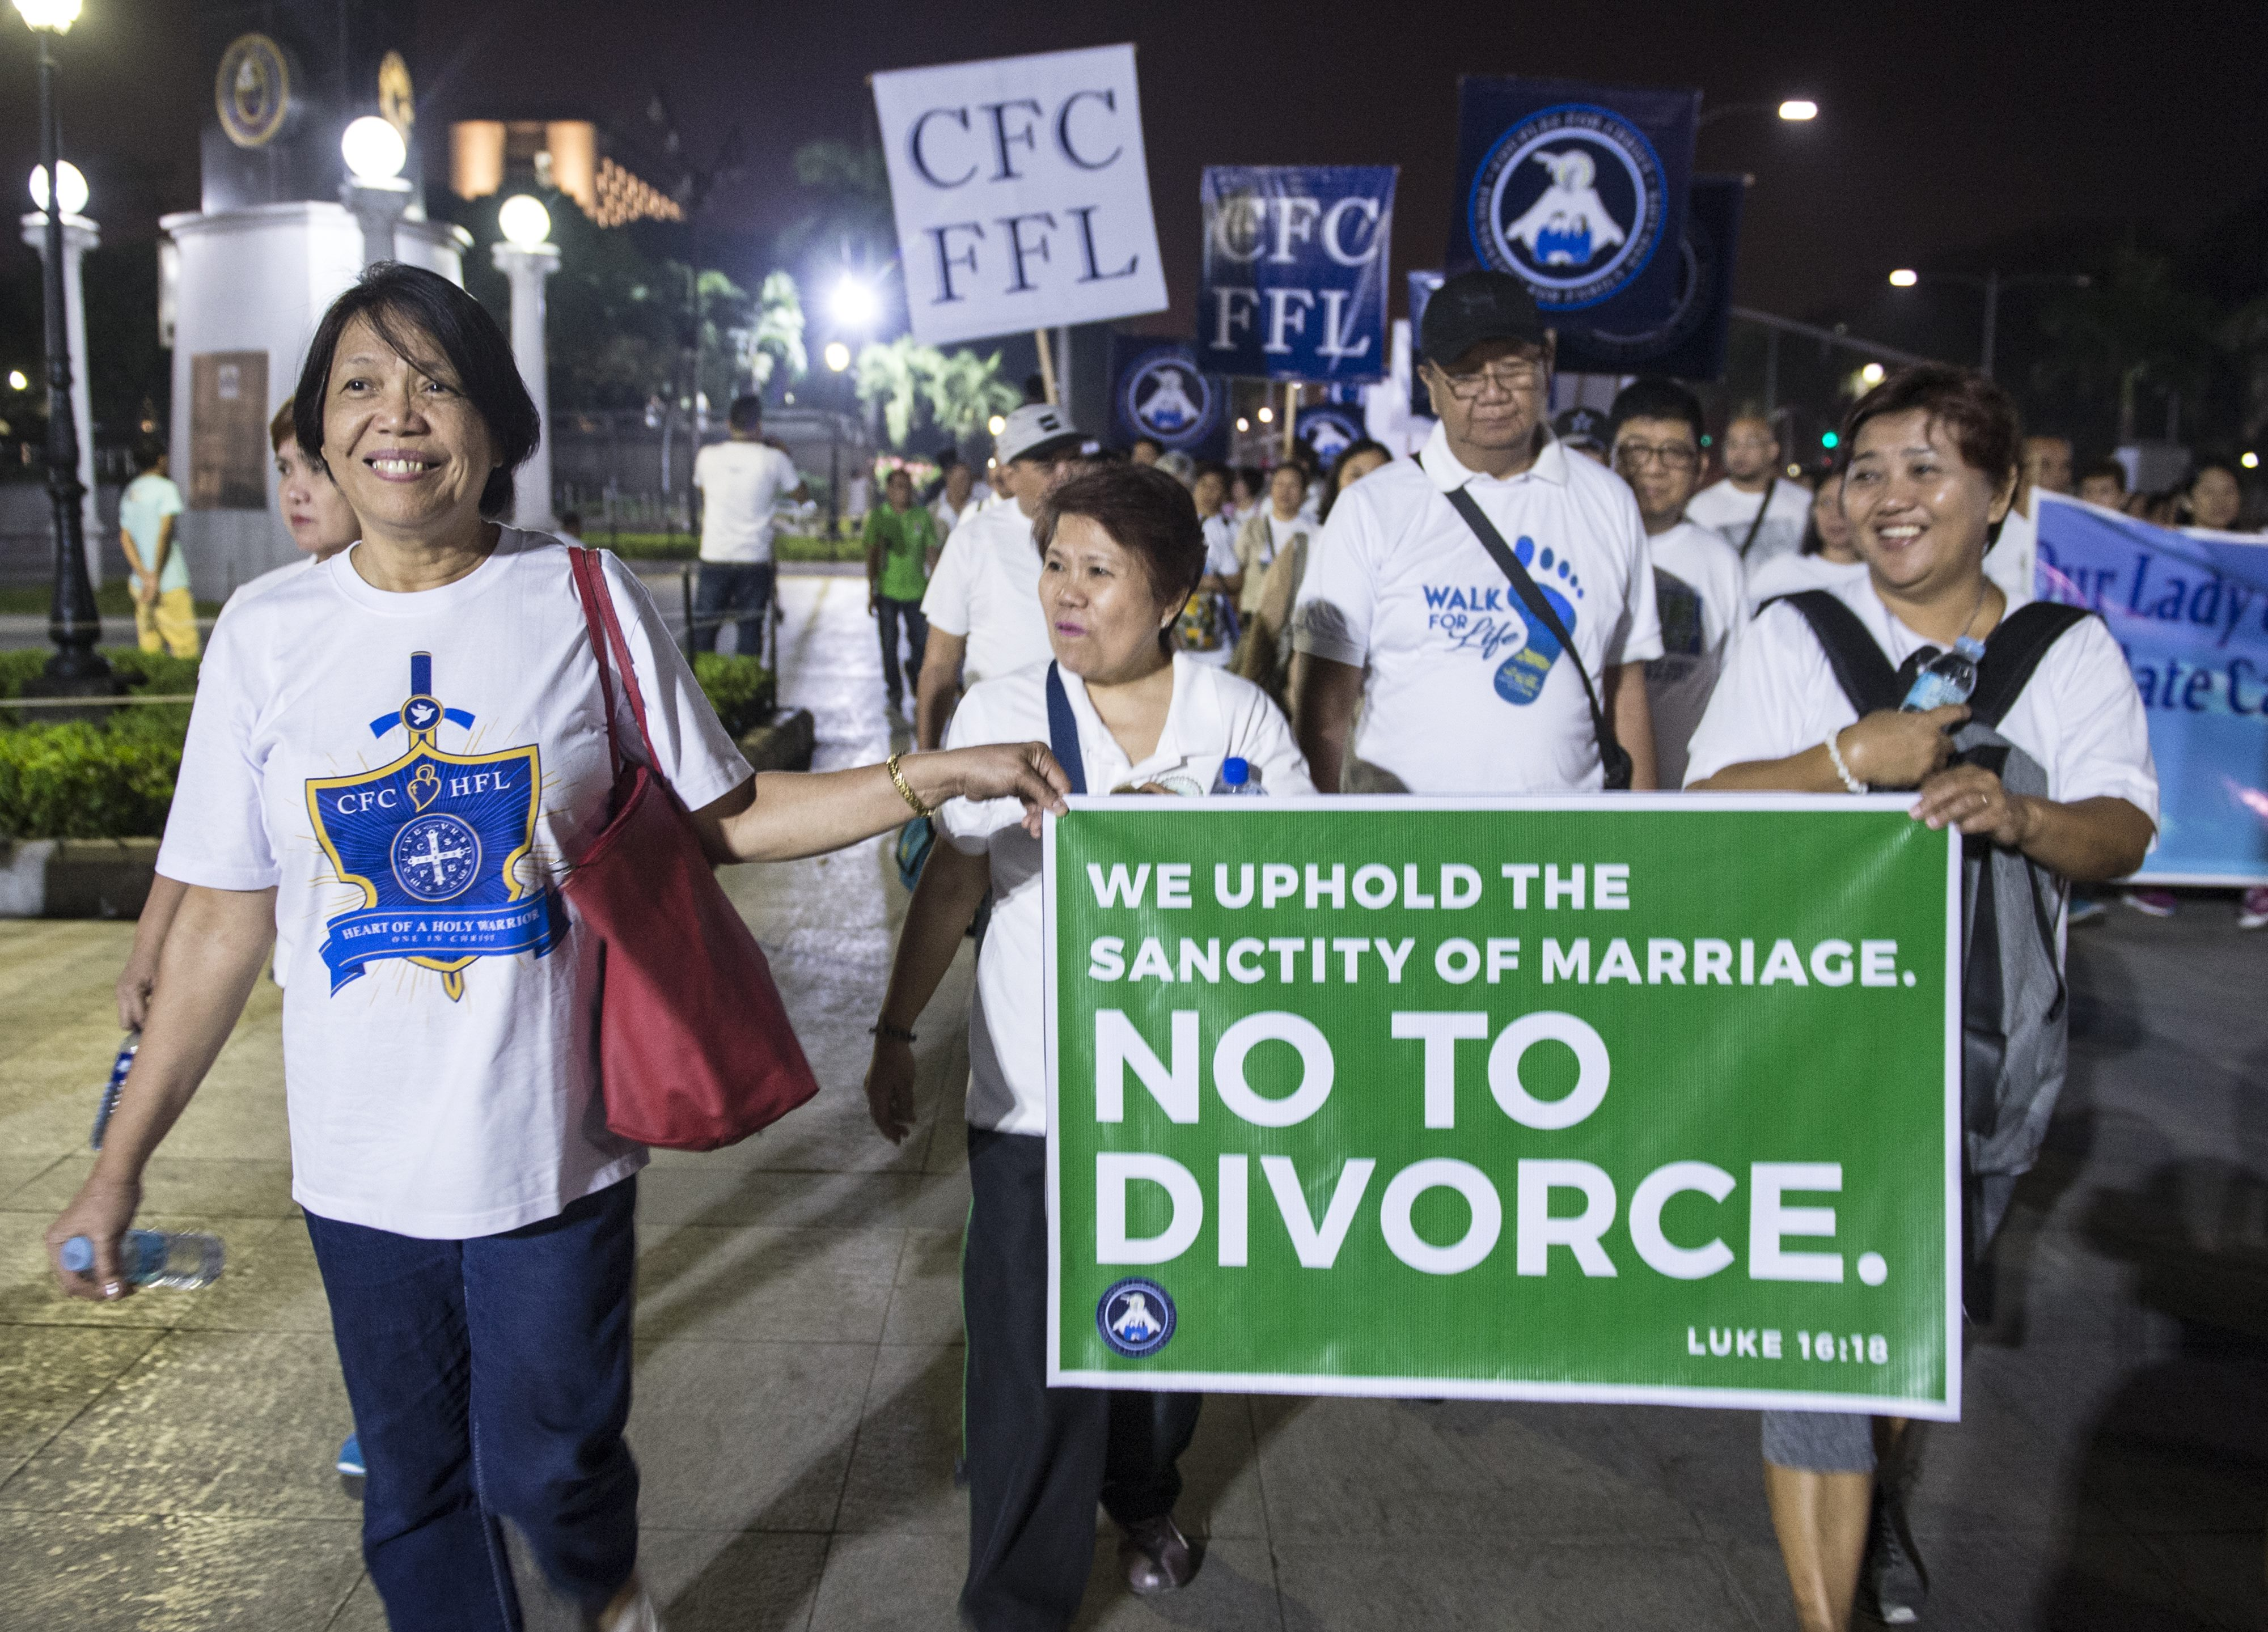 Catholic protestors carry signs at a  march for life  to oppose a bill legalizing divorce in Manila, Philippines on Feb. 24, 2018.